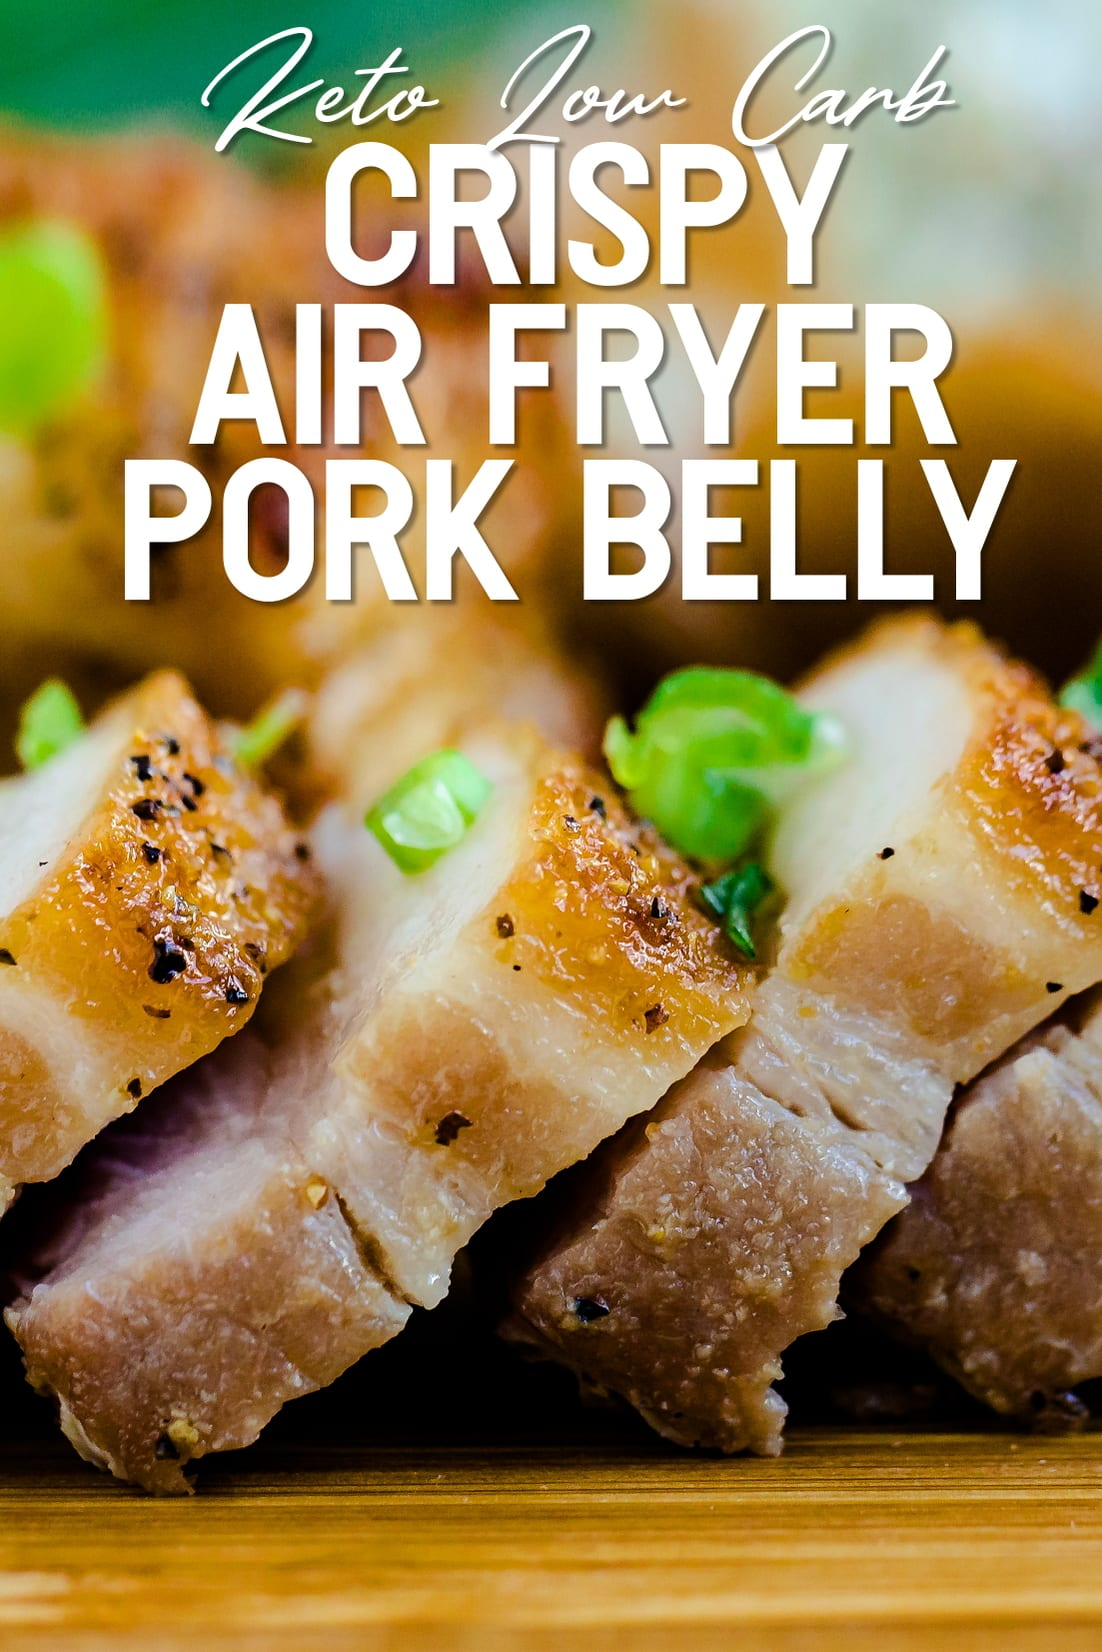 Crispy Pork Belly lined up on wooden plank with green onions sprinkled side shot